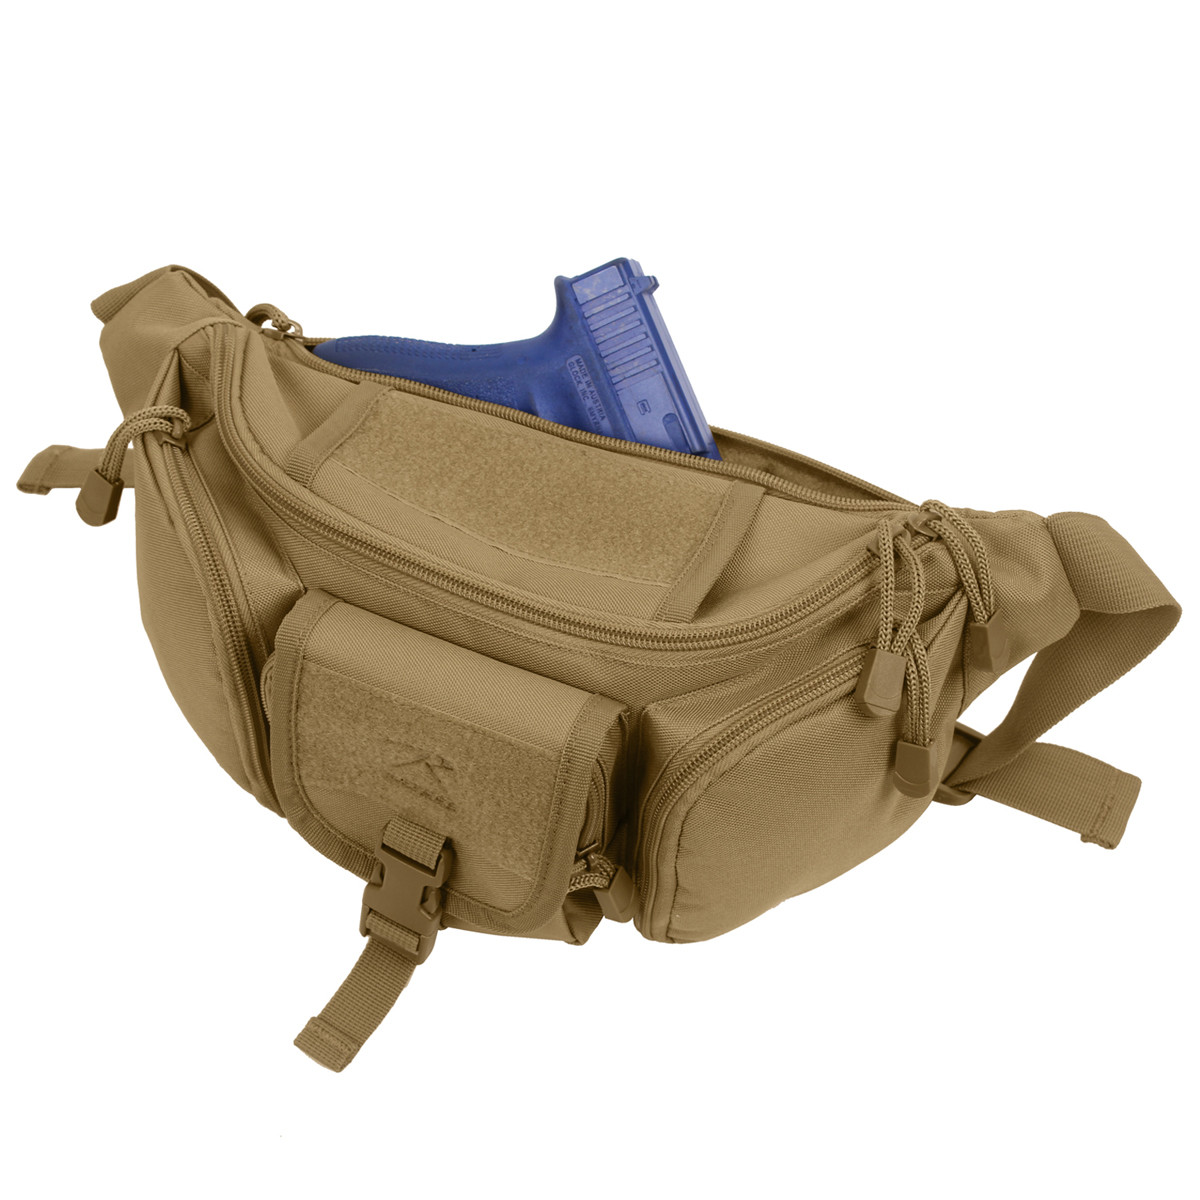 cf32c126aec Shop Tactical Concealed Carry Waist Packs - Fatigues Army Navy